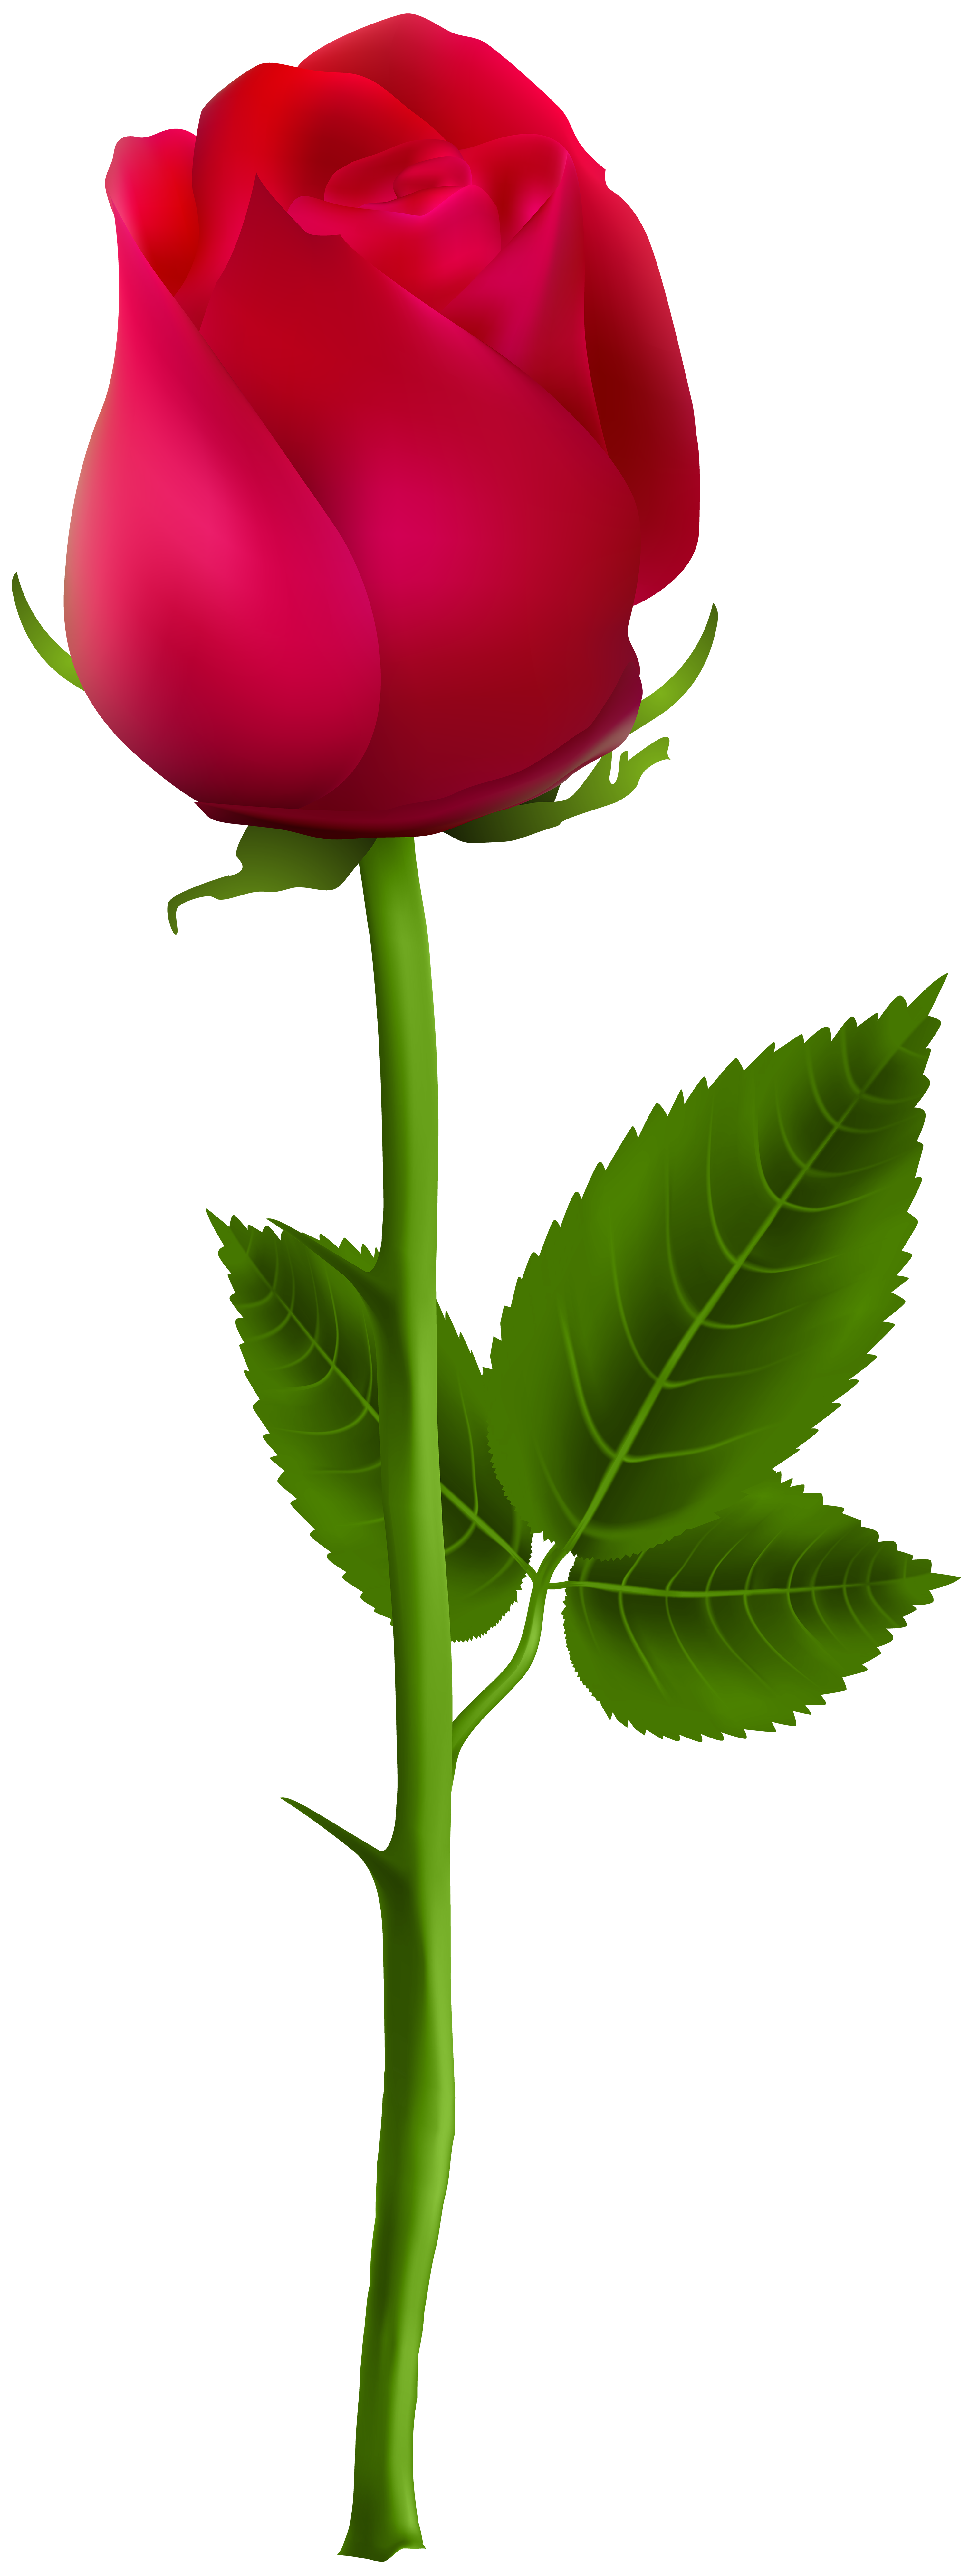 Red Rose Png Clip Art Image Gallery Yopriceville High Quality Images And Transparent Png Free Clipart In 2020 Red Rose Png Red Roses Wallpaper Rose Flower Png